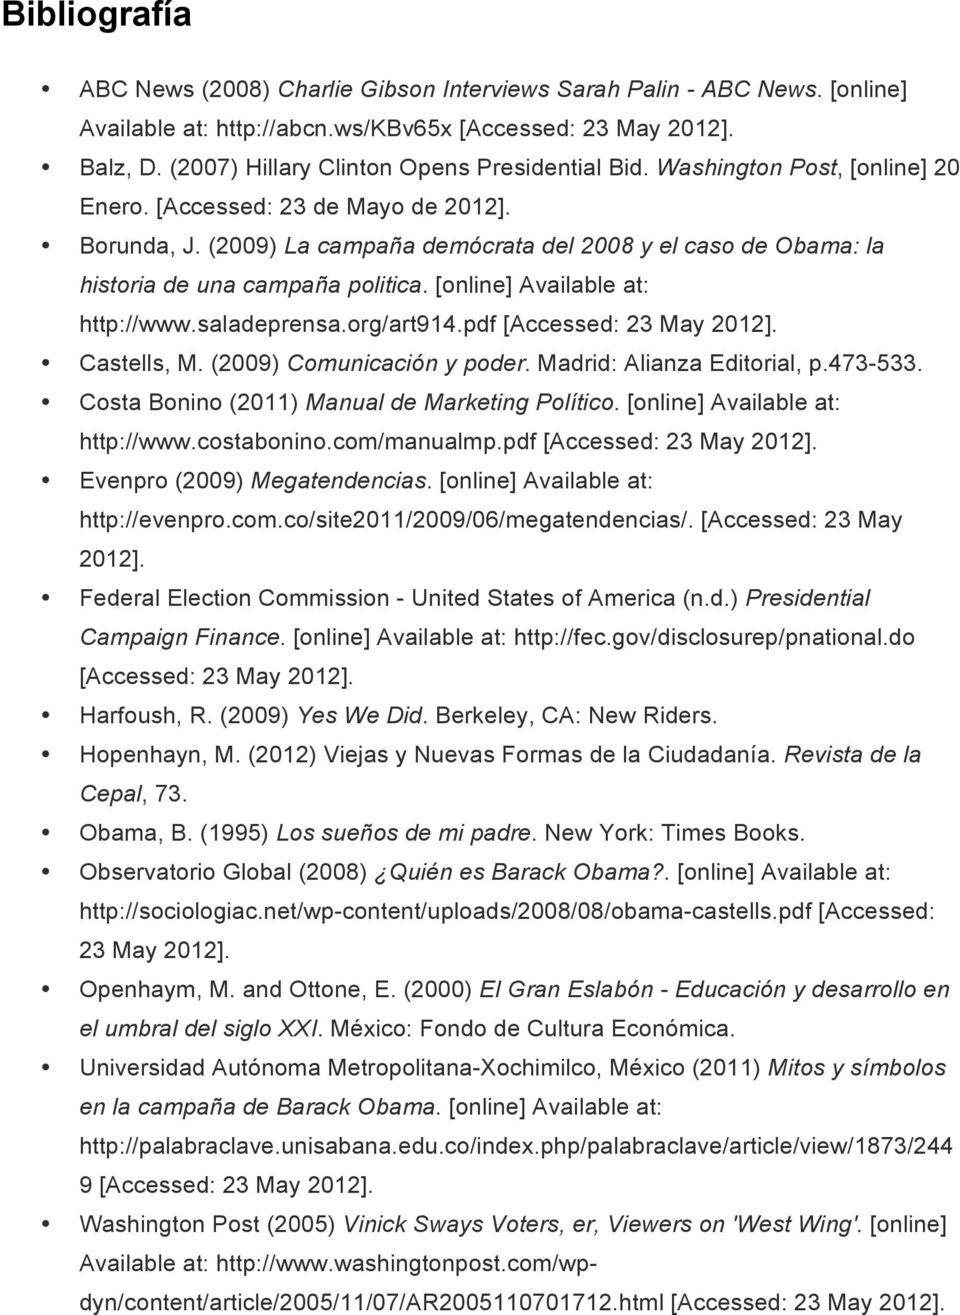 (2009) La campaña demócrata del 2008 y el caso de Obama: la historia de una campaña politica. [online] Available at: http://www.saladeprensa.org/art914.pdf [Accessed: 23 May 2012]. Castells, M.